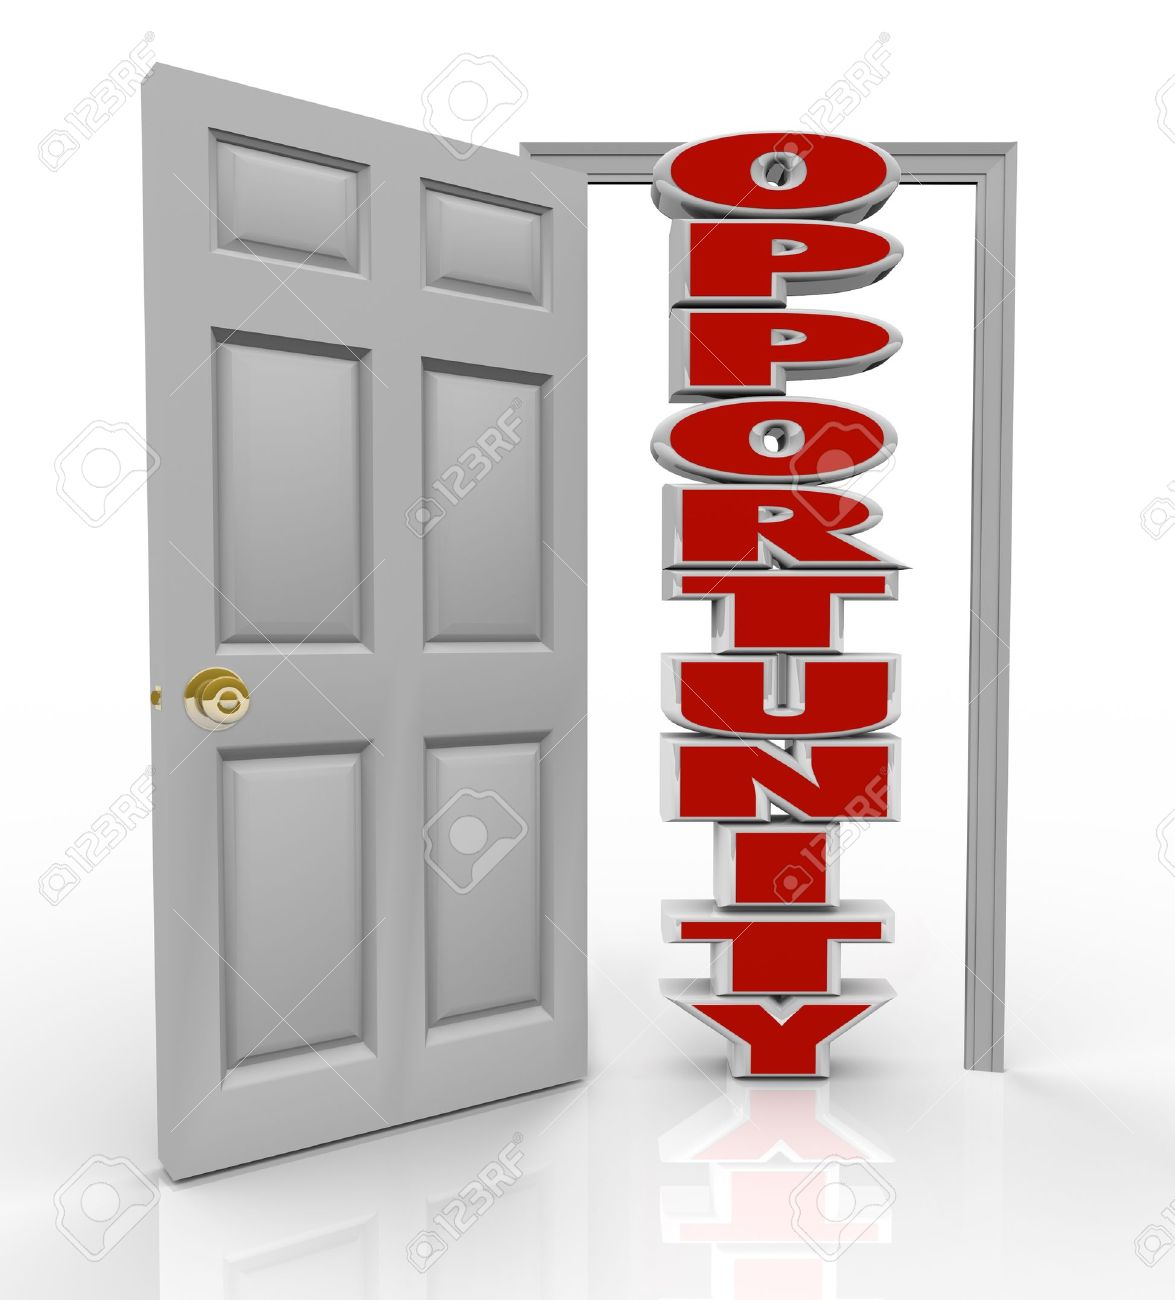 a white door opens to reveal the word opportunity to illustrate a white door opens to reveal the word opportunity to illustrate the new chance you have